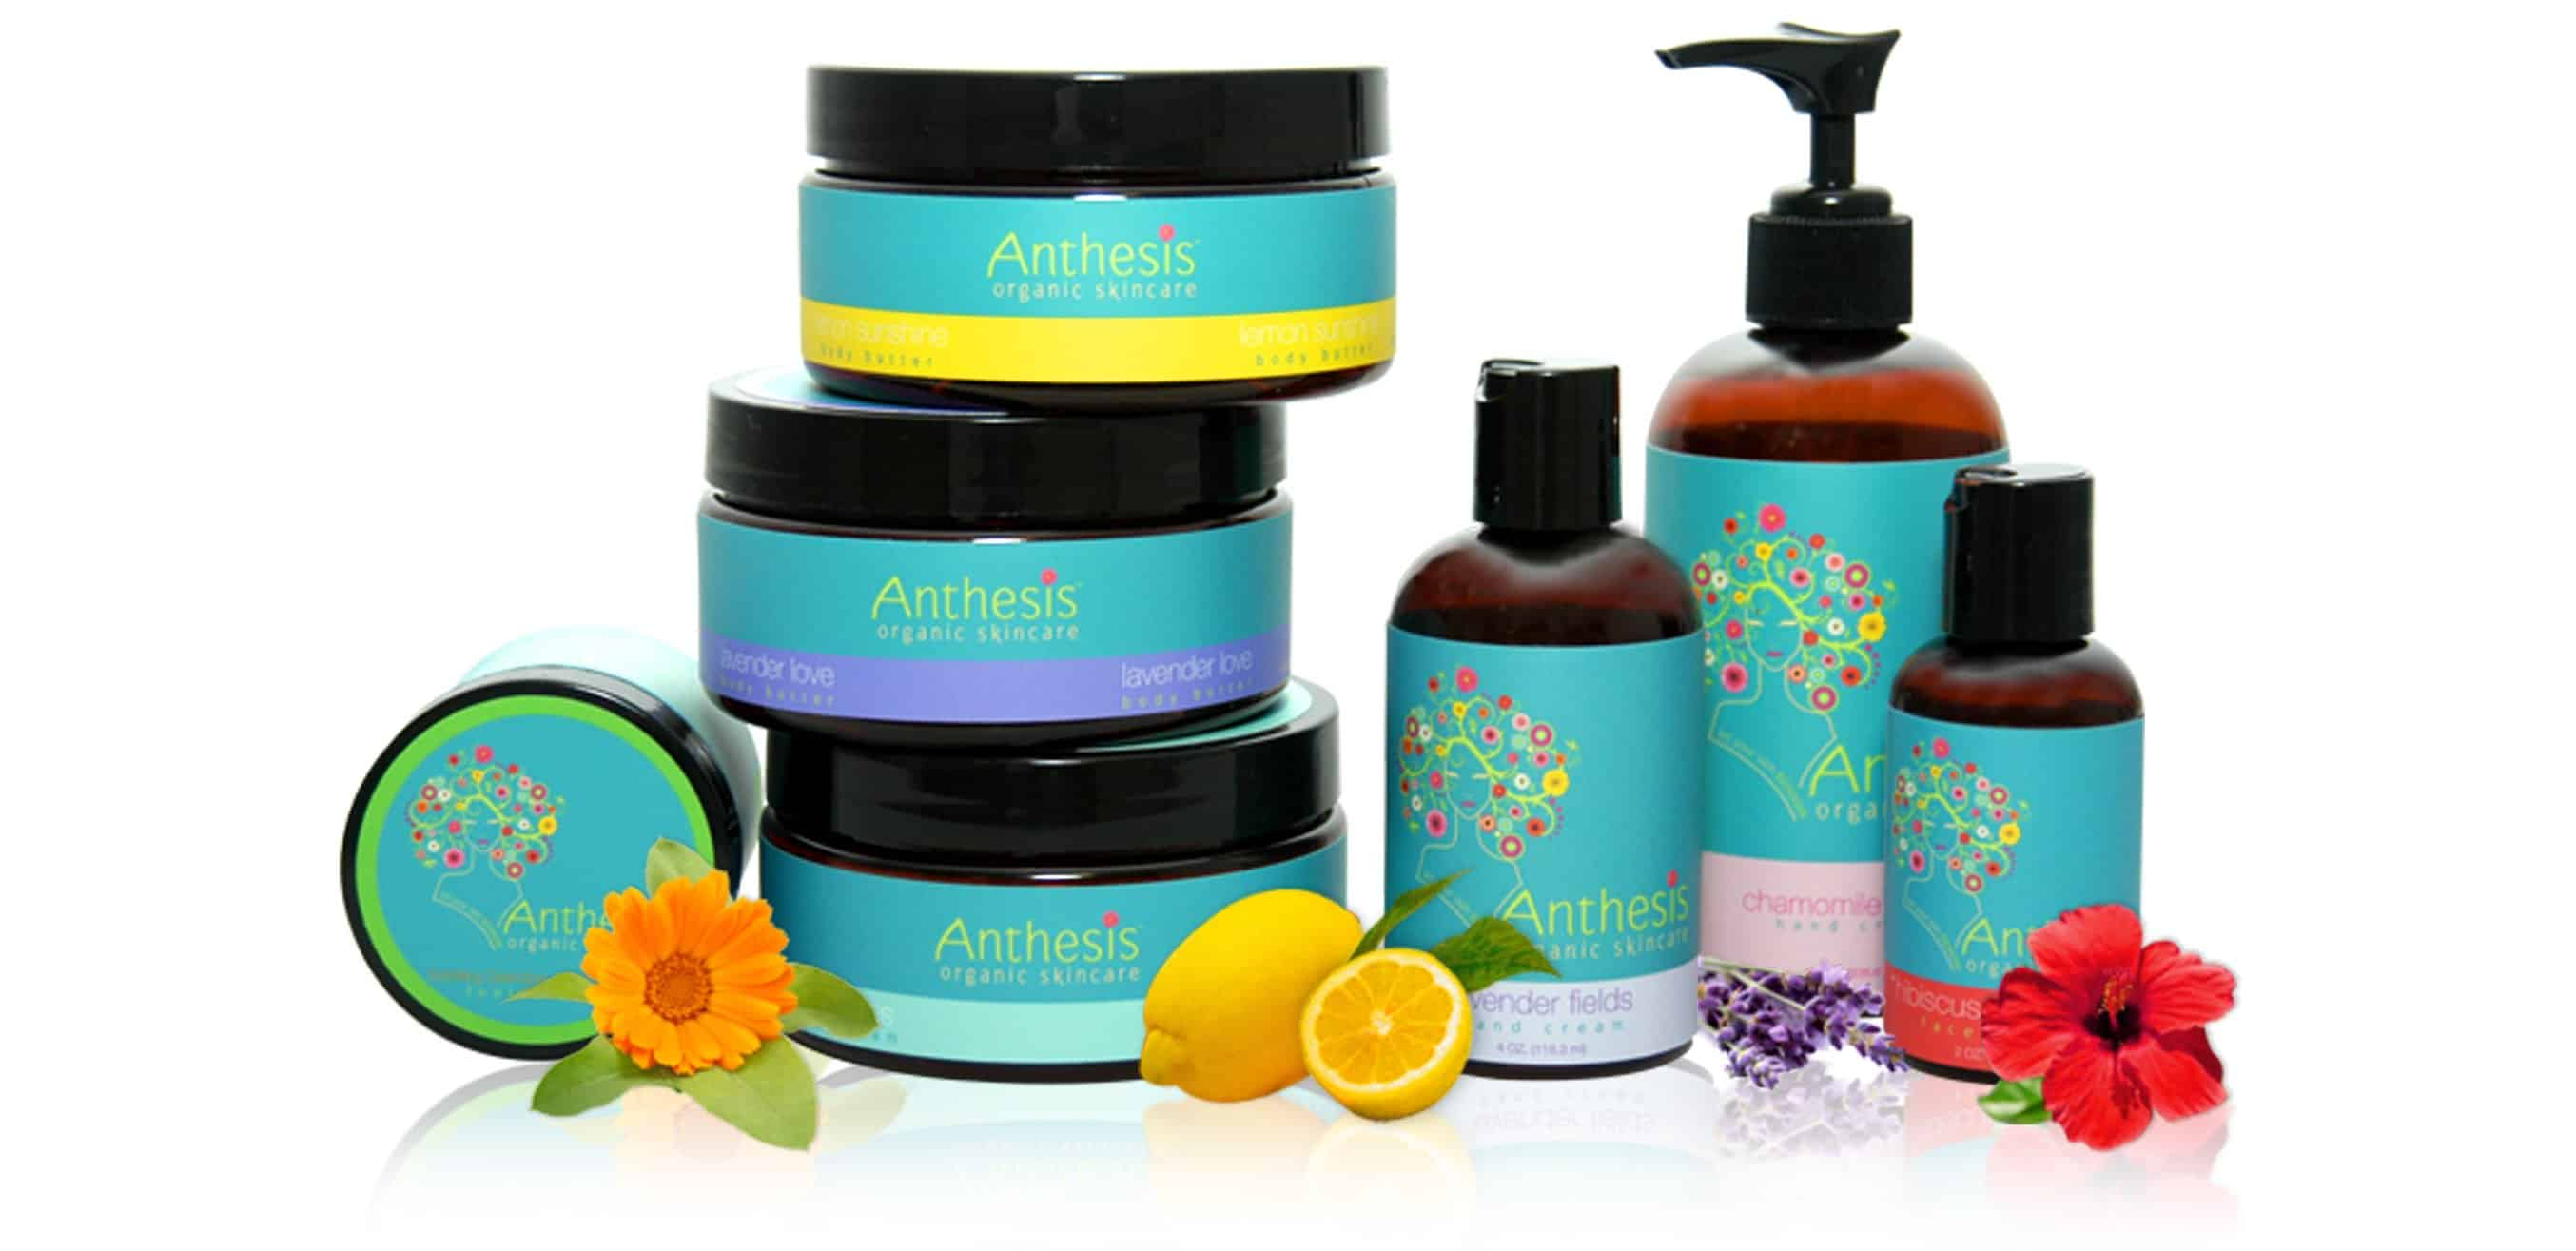 Anthesis_Packaging